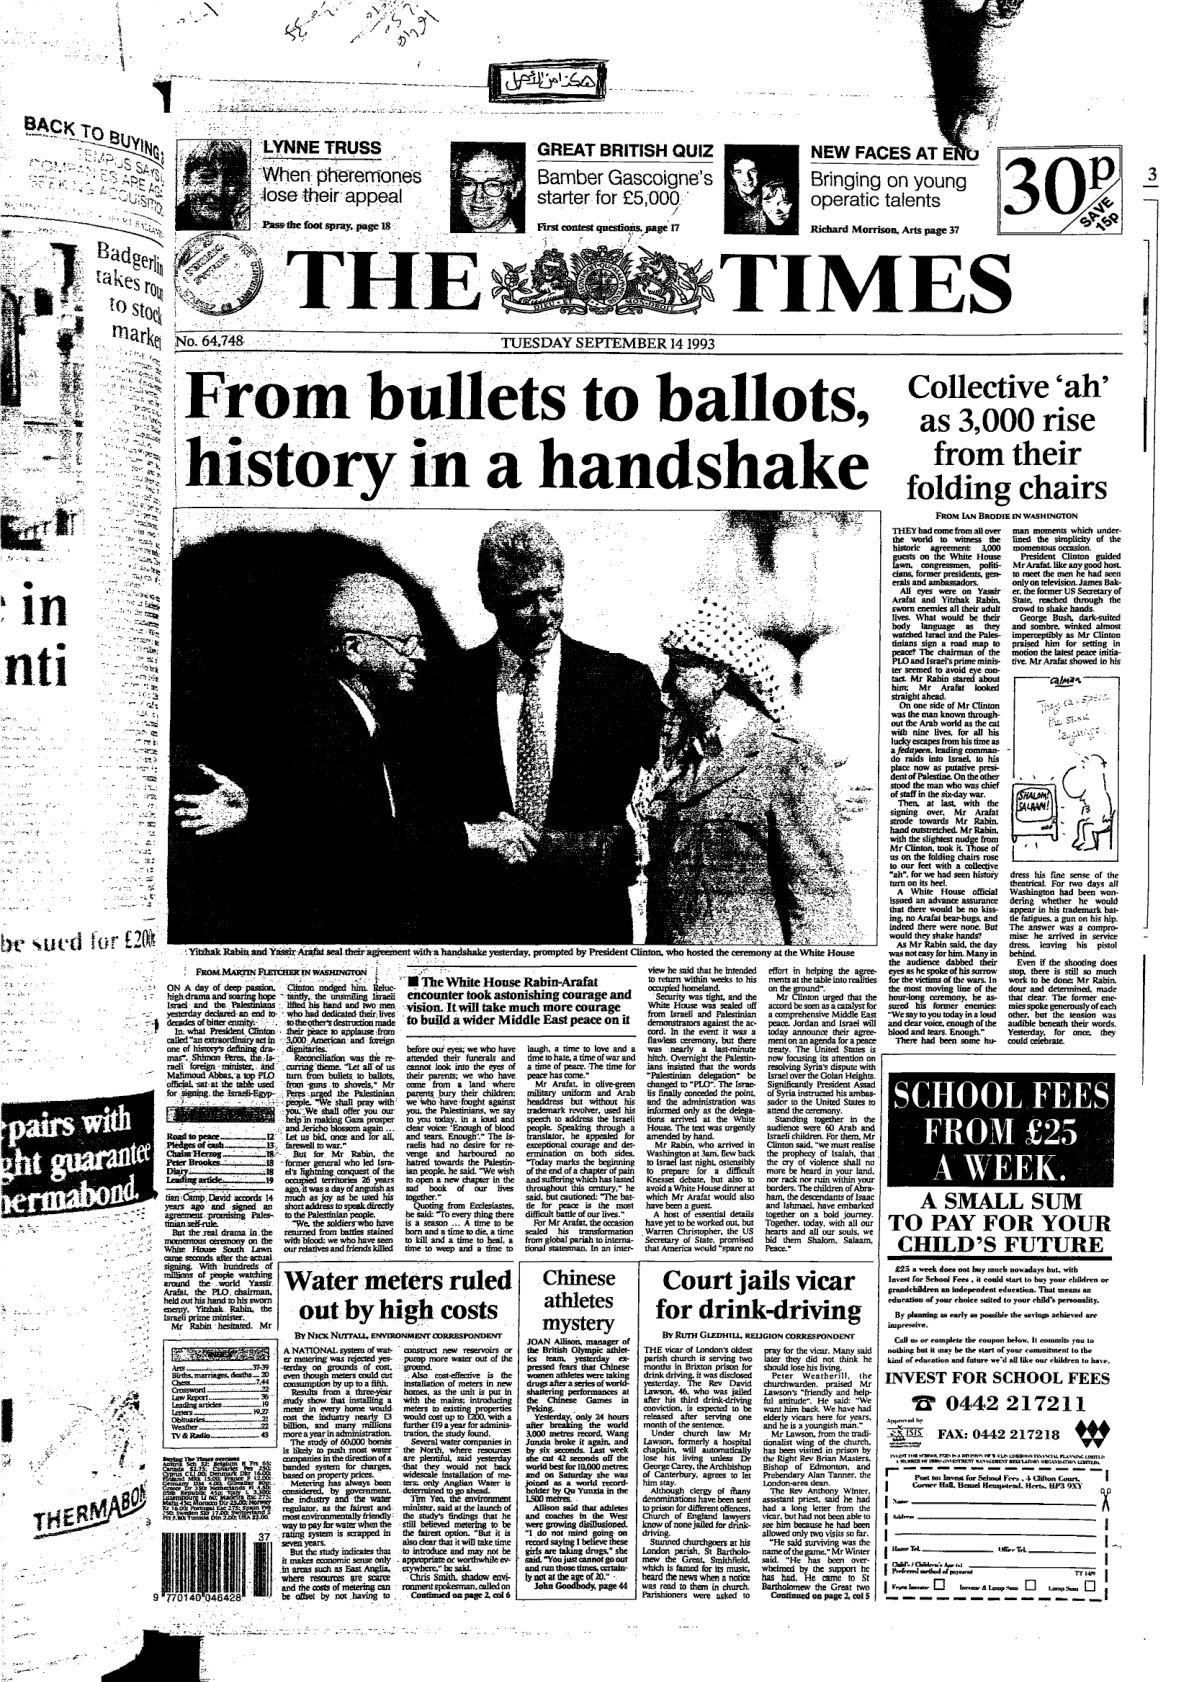 The Times Issue No. 64748. 1993-09-14, UK